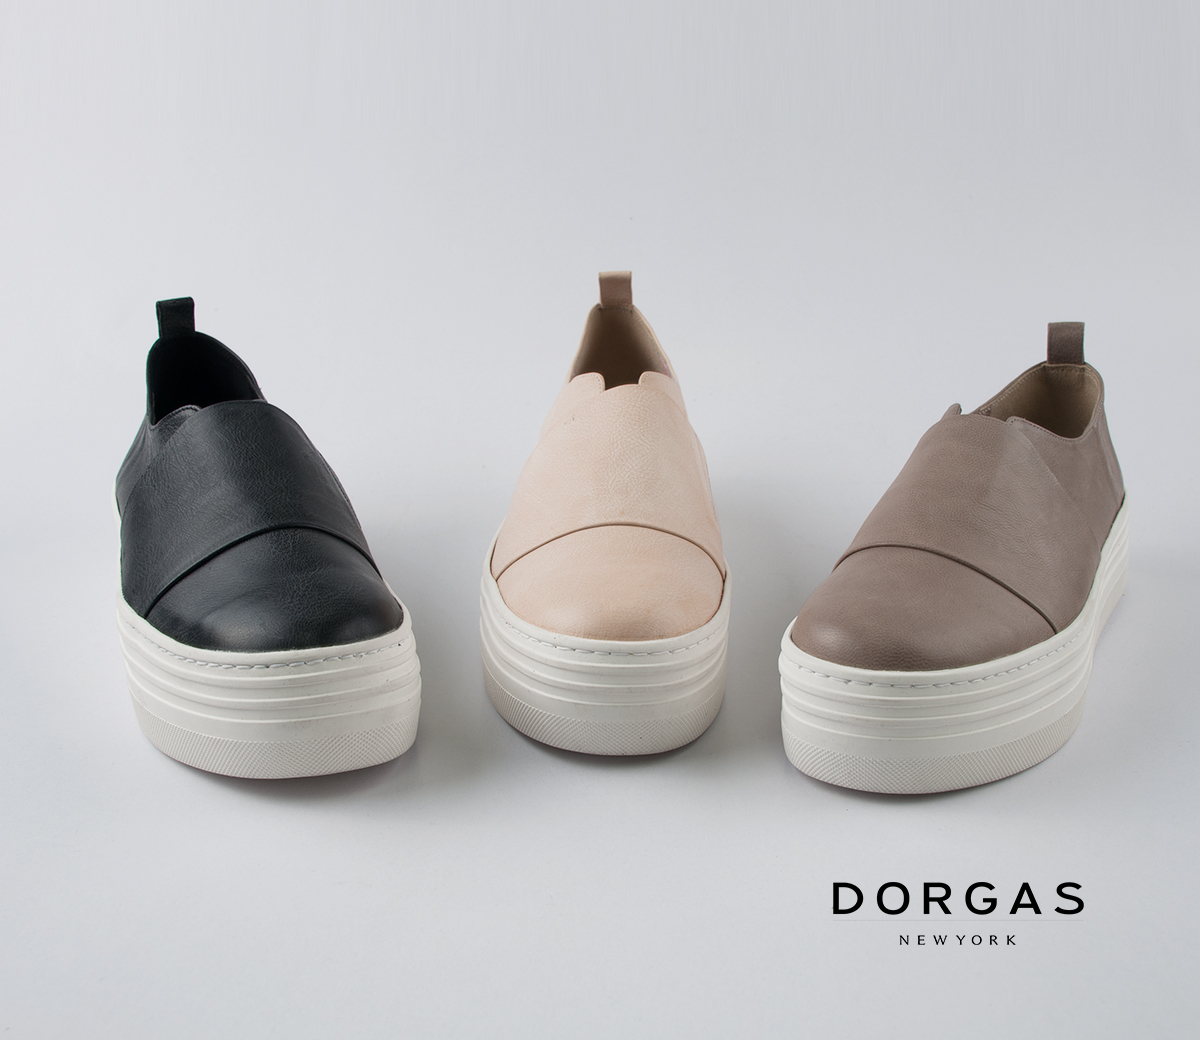 DN303 Shoes